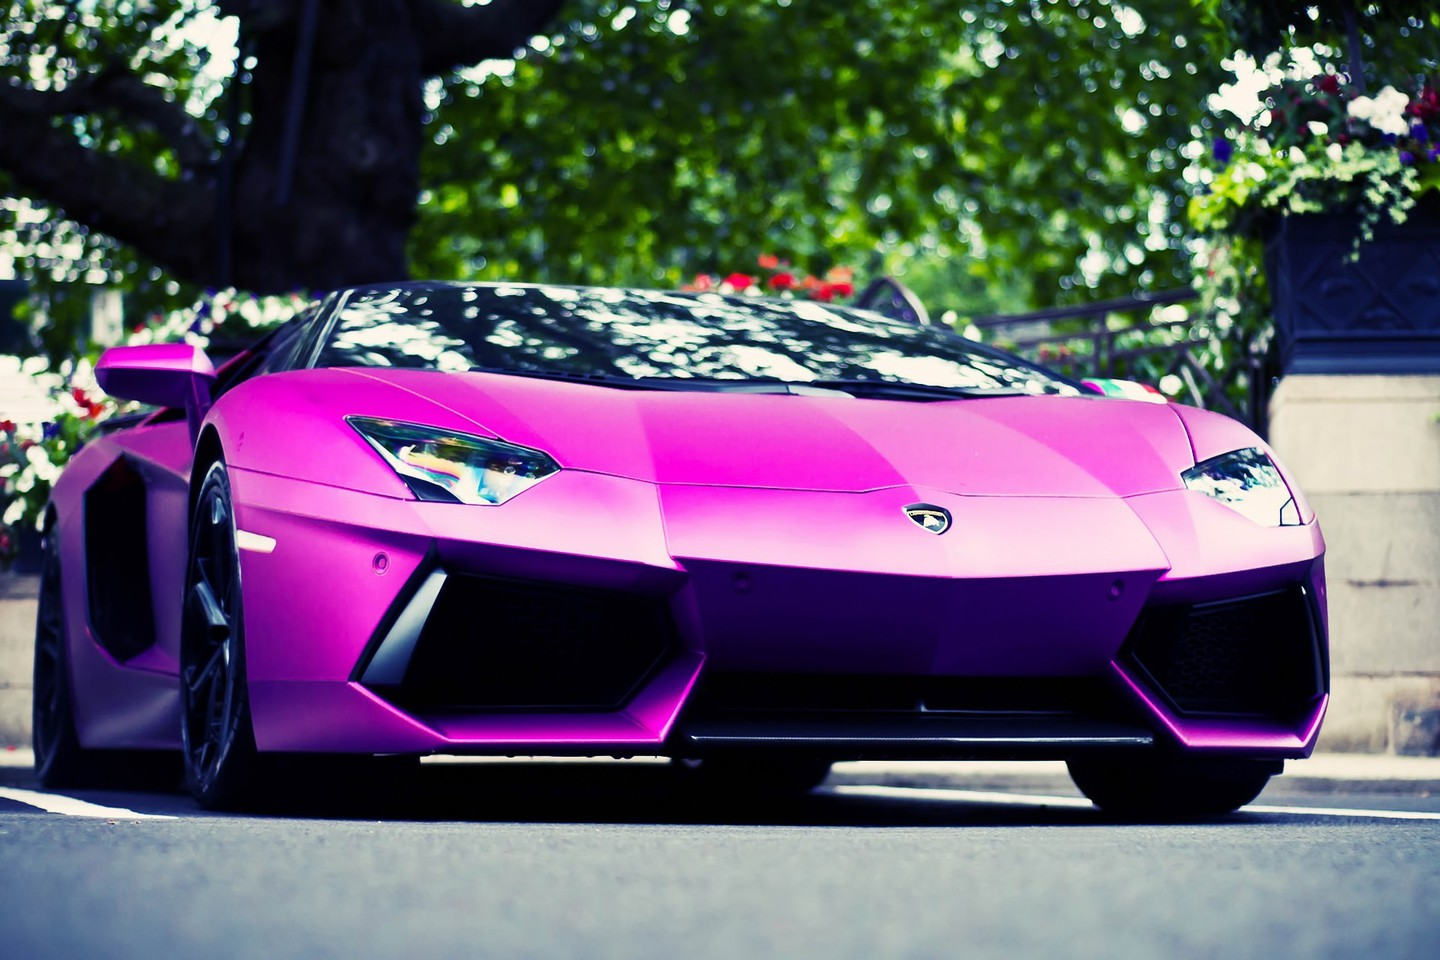 Pink Cars Lamborghini Aventador Low Angle Shot Wallpaper